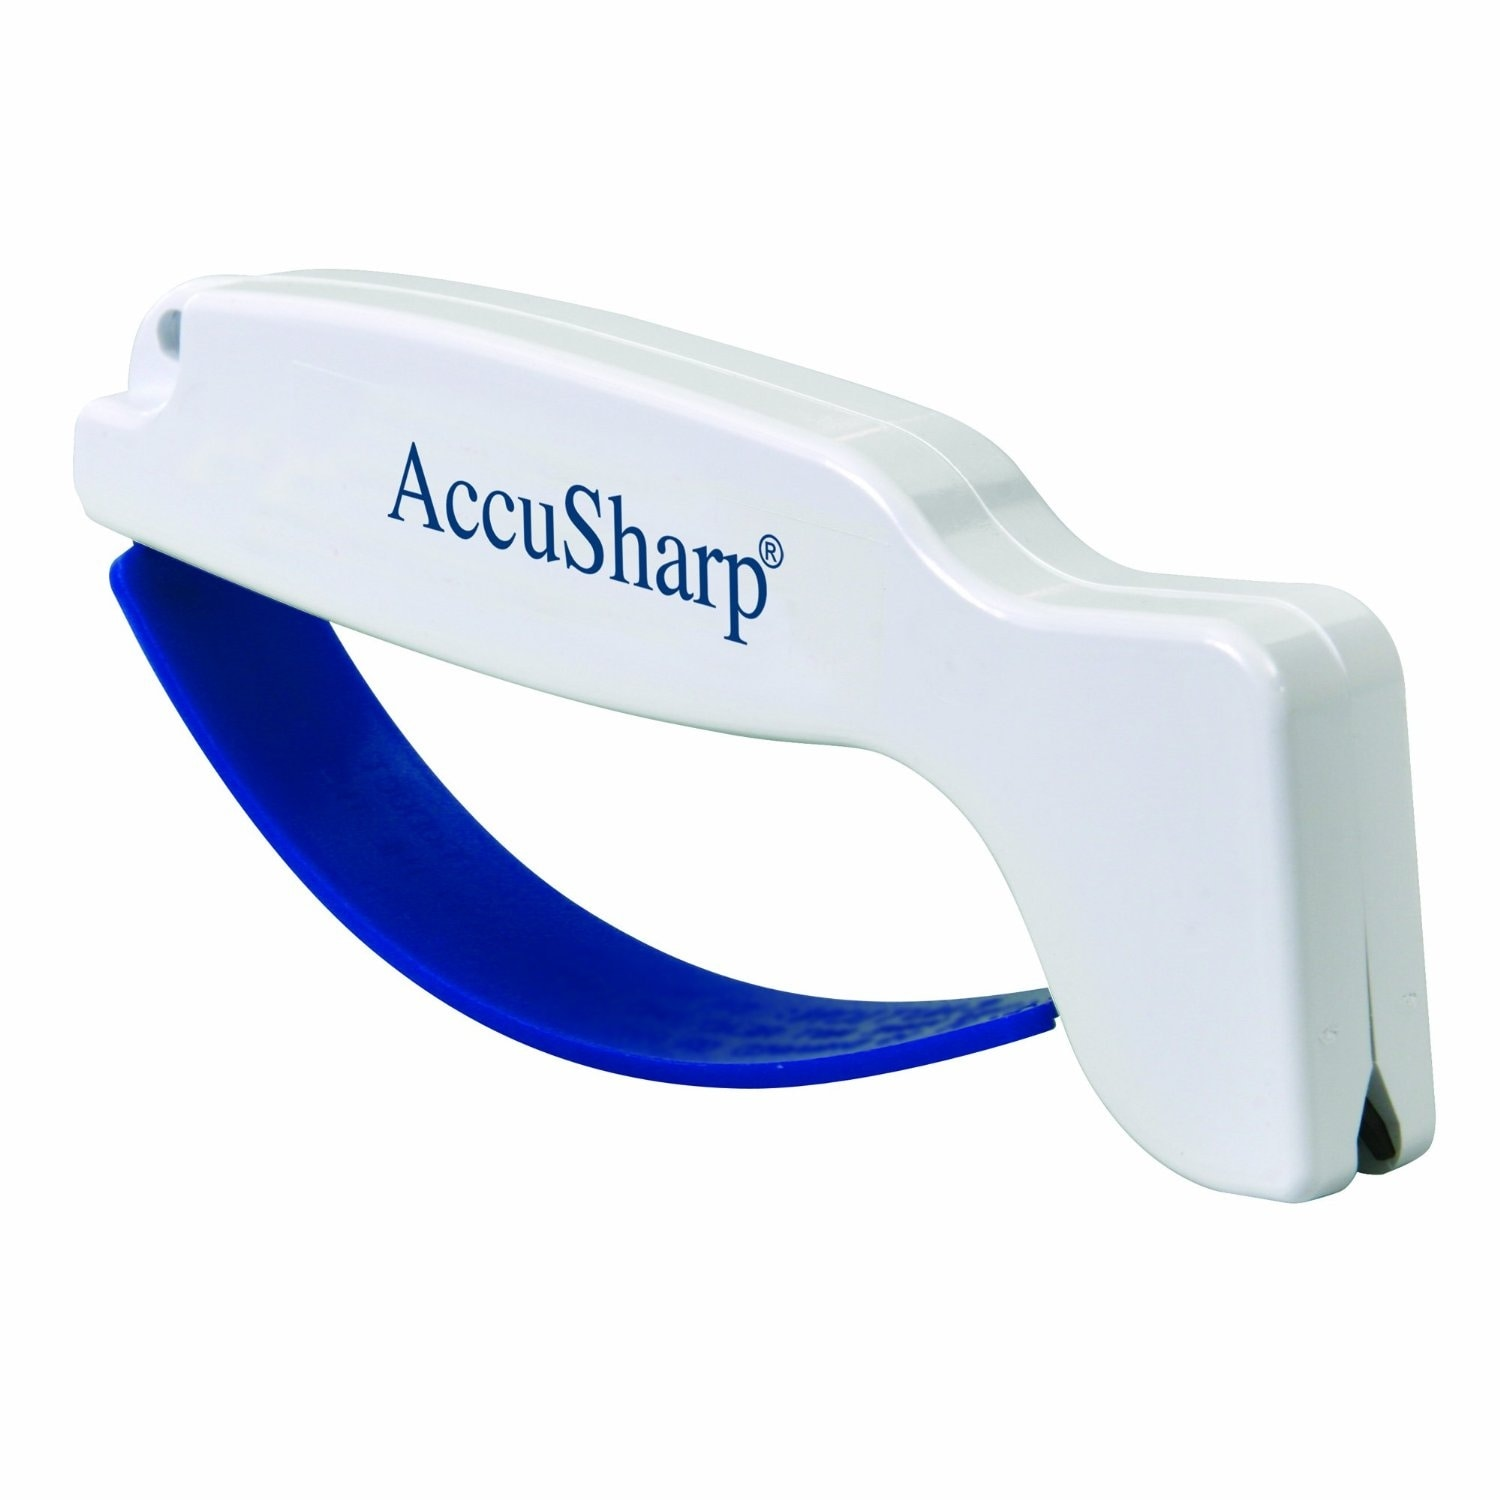 AccuSharp 001 Knife and Tool Sharpener 001 White with Full Length Finger Guard thumbnail